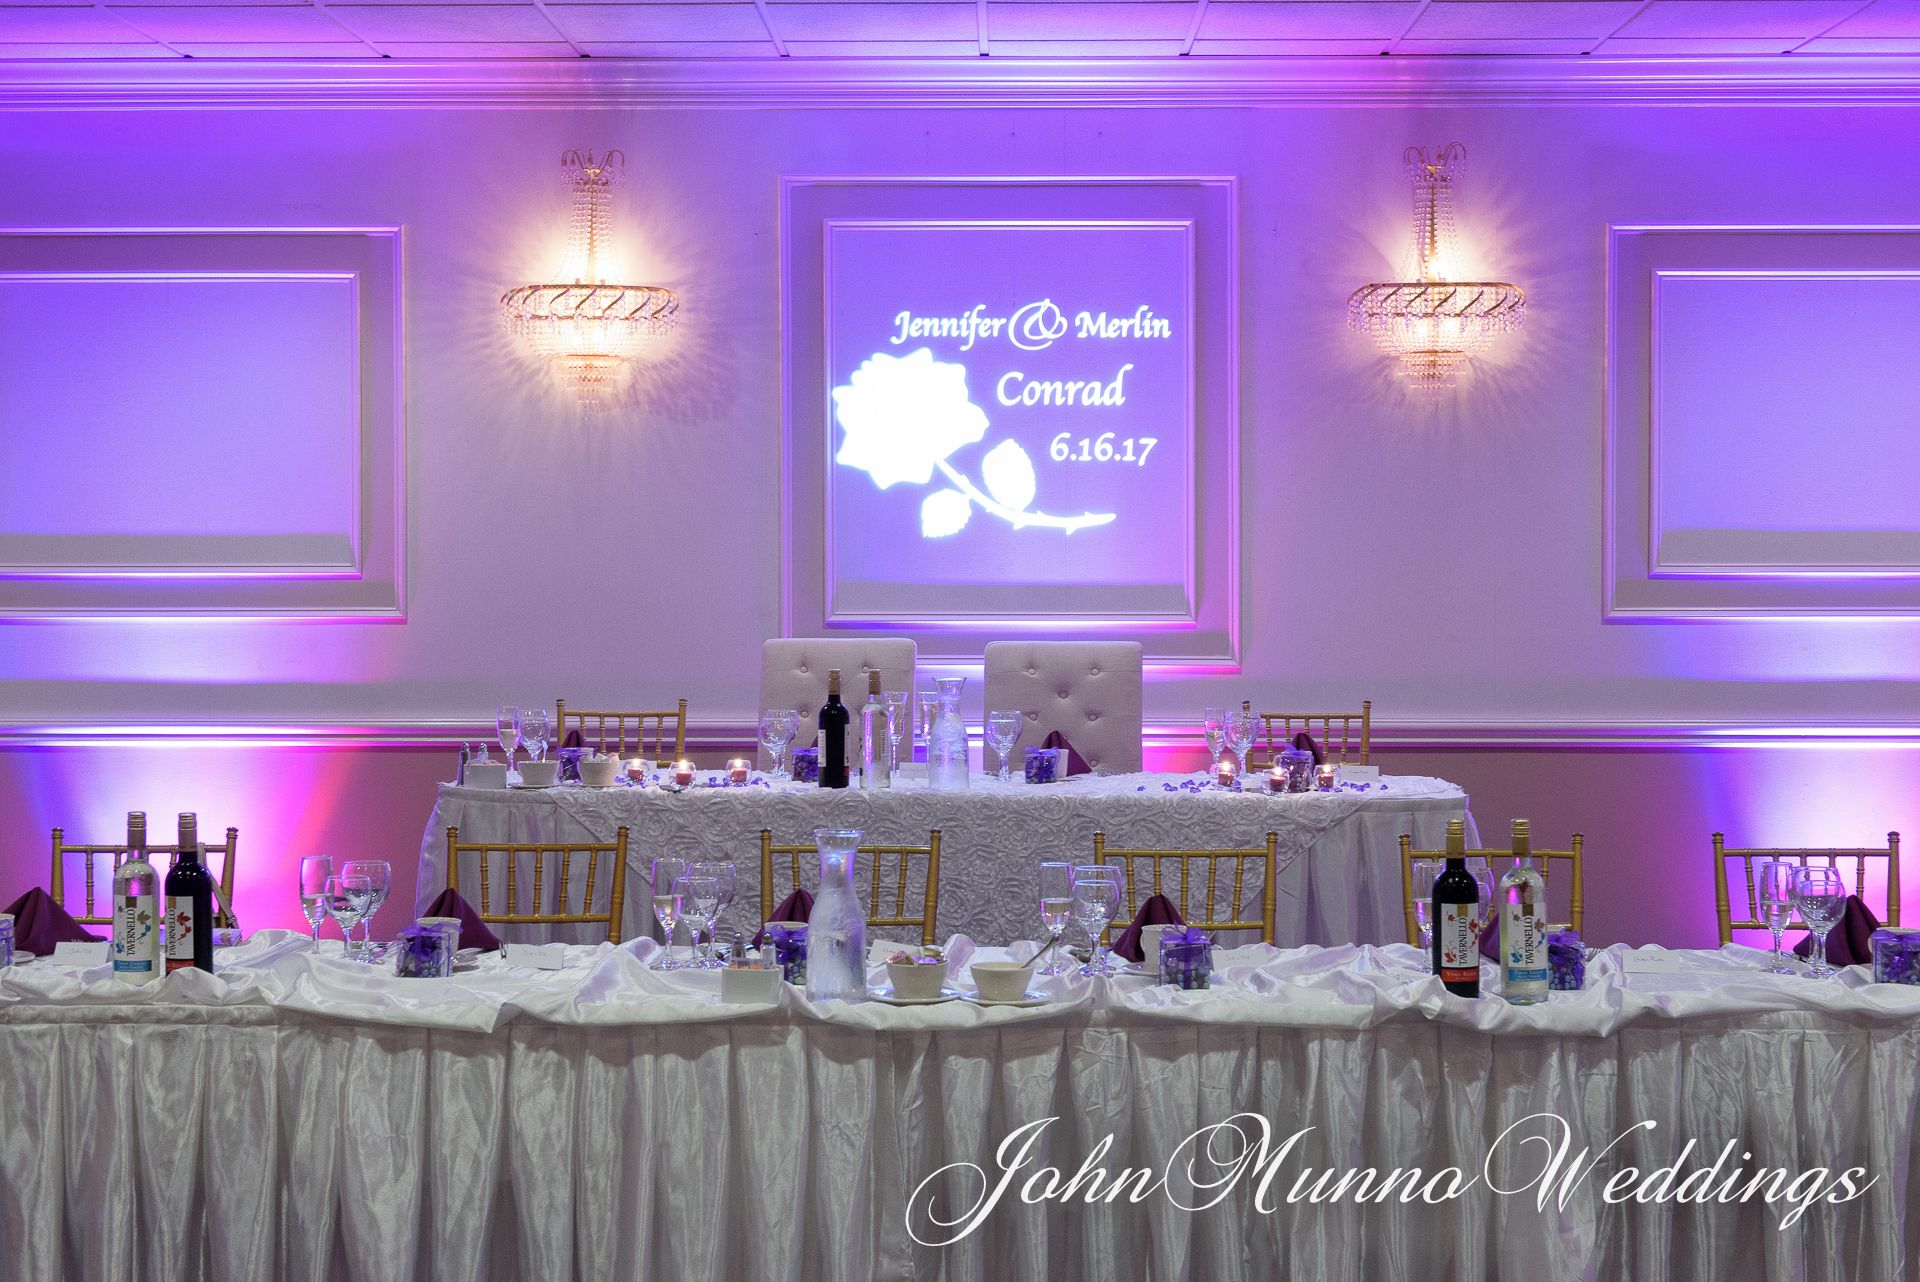 Wedding reception decoration ideas with lights  Sweetheart table and reception decor shot at Fantasia wedding venue